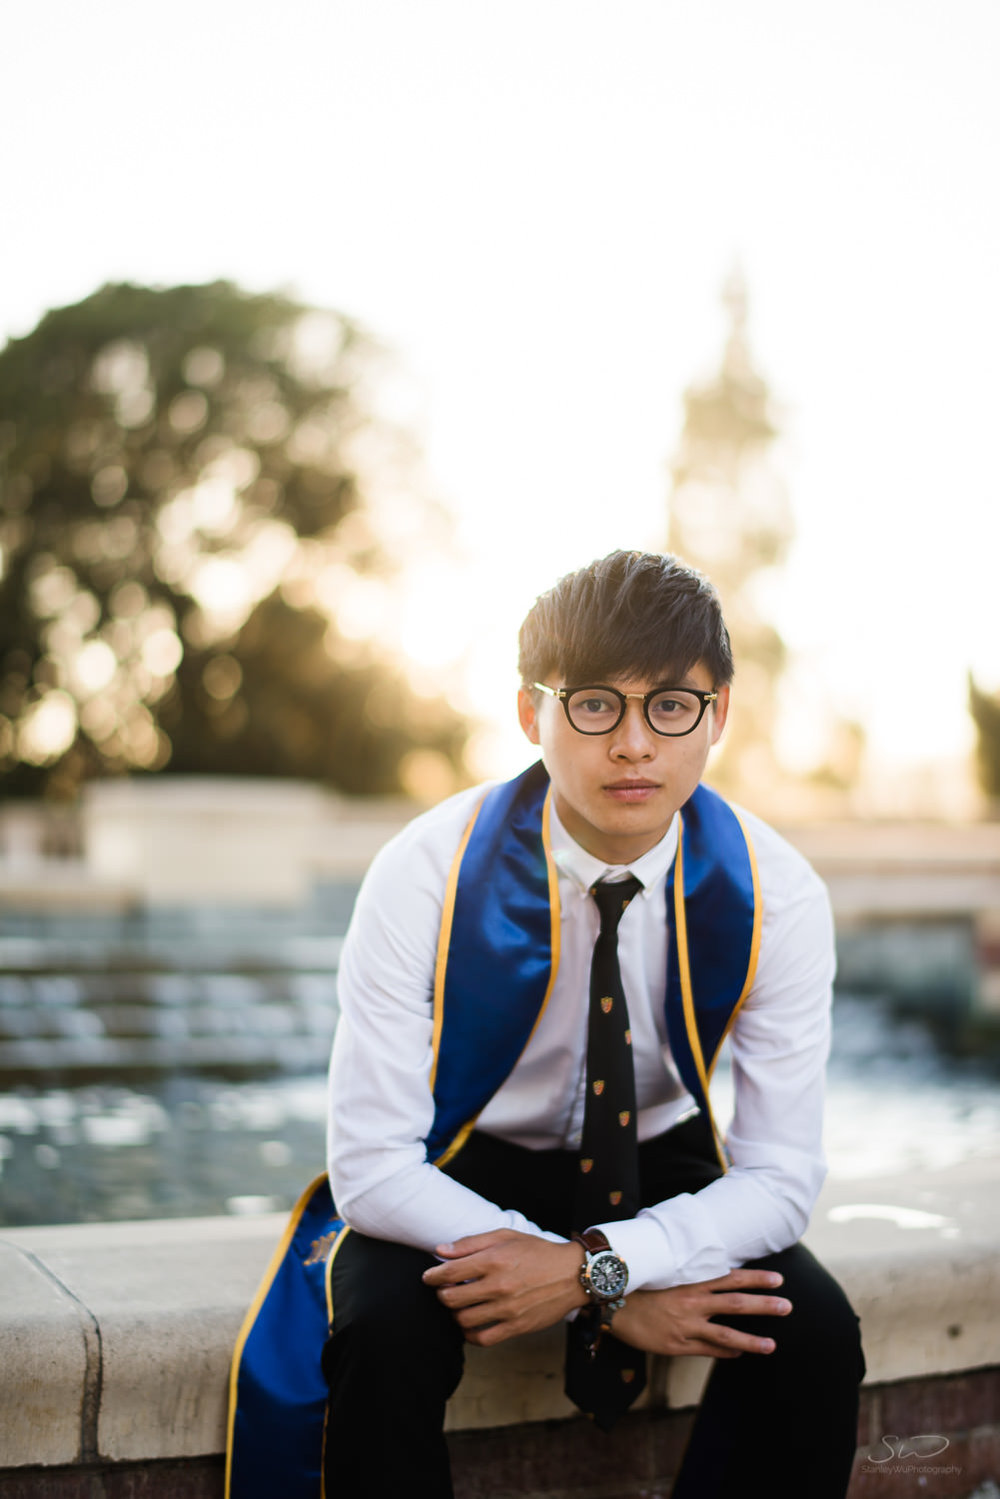 Fashionable Senior Portrait. Best graduation portrait photography, Los Angeles.